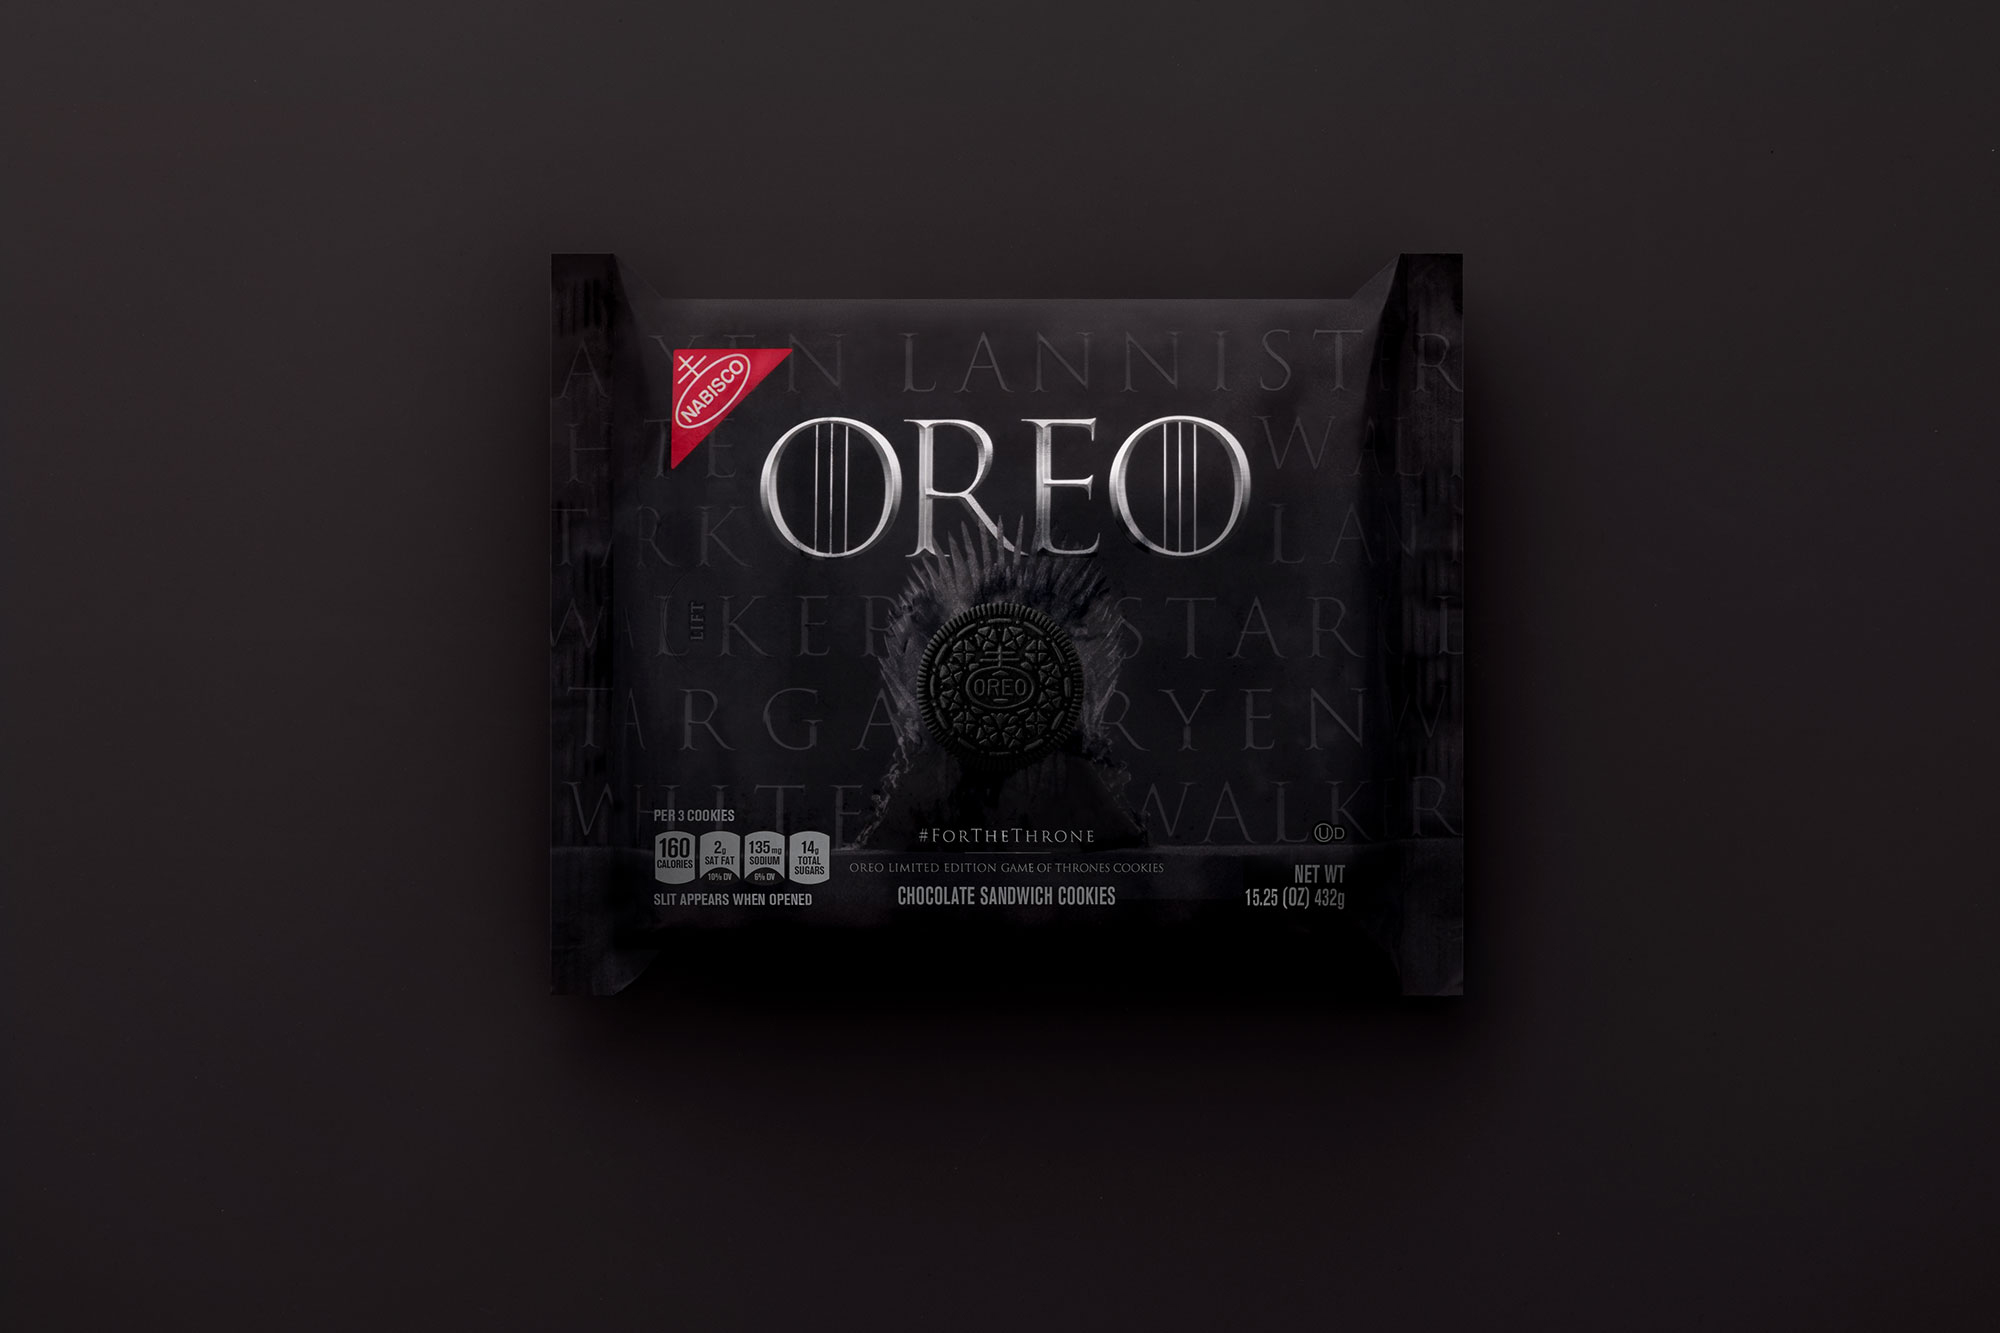 Game of Thrones Final Season Food - There's no shortage of different varieties of America's favorite cookie, but the GOT -themed Oreos set themselves apart from the brand's other confections because they feature four unique embossments spotlighting the Great Houses still battling for the Iron Throne and the enemy White Walkers beyond the wall. Fans can pledge their fealty for House Lannister, House Targaryen, House Stark or The Night King by visiting oreo.com.